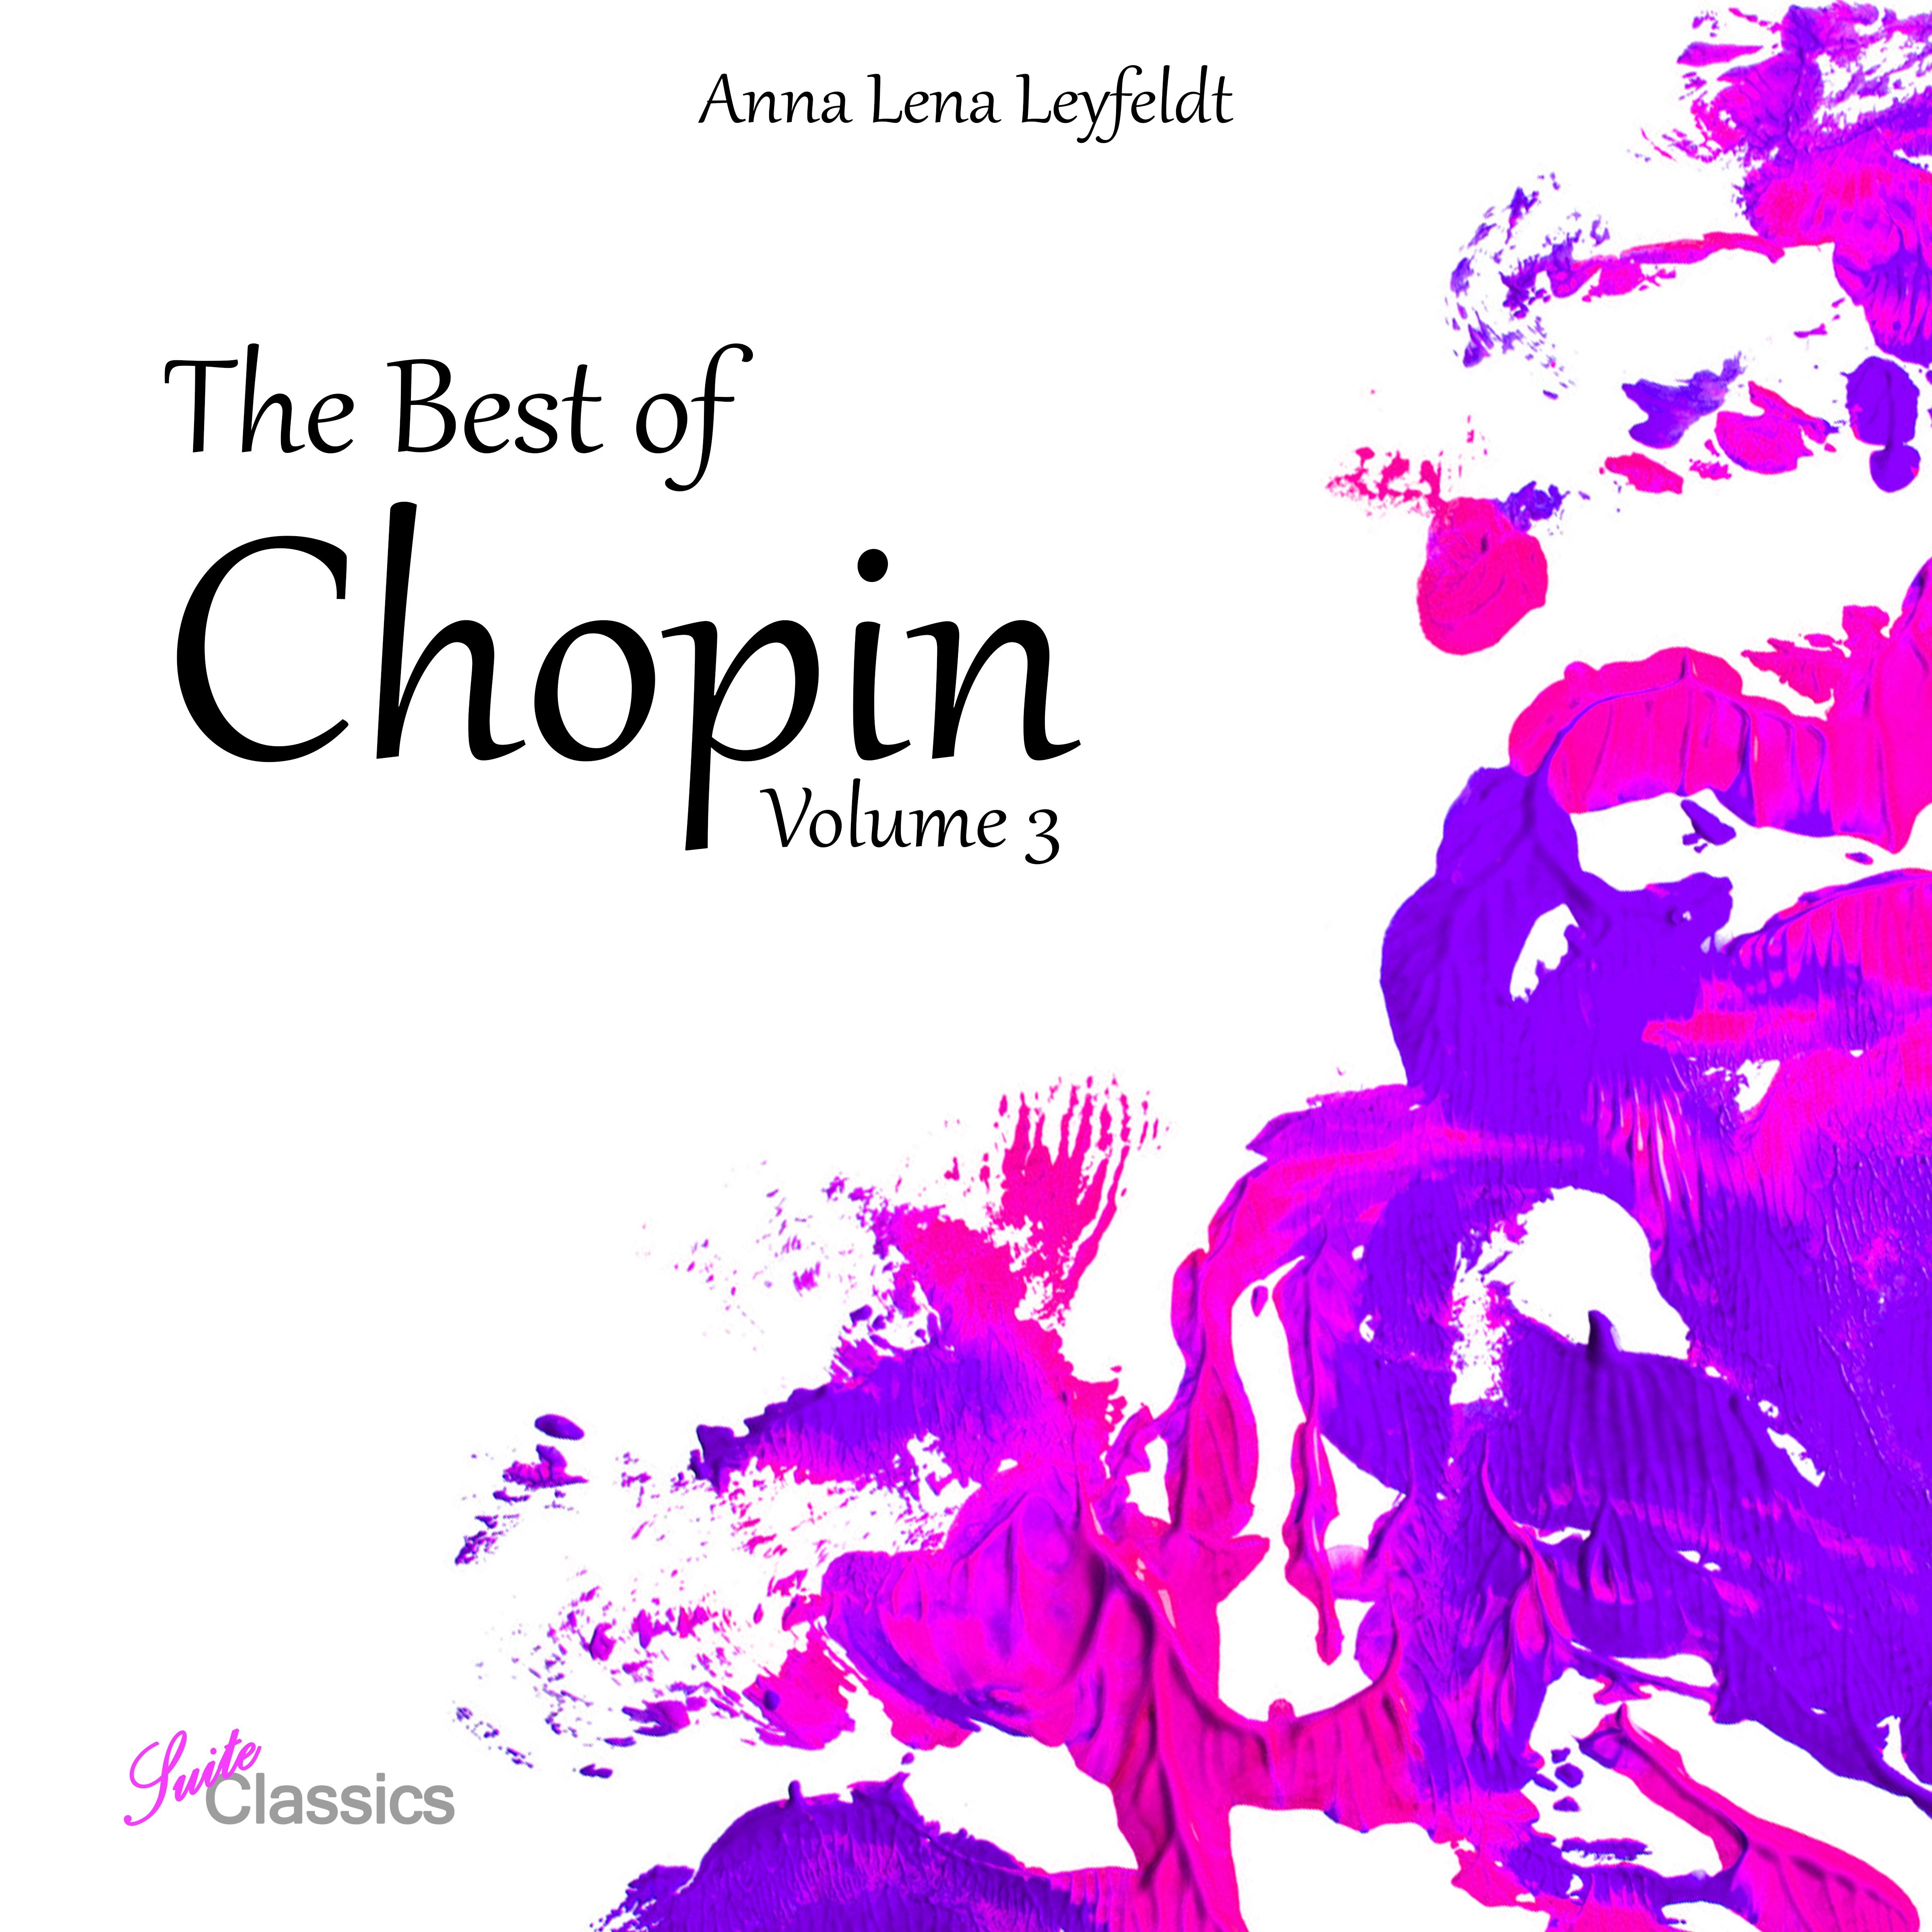 The Best of Chopin, Vol. 3